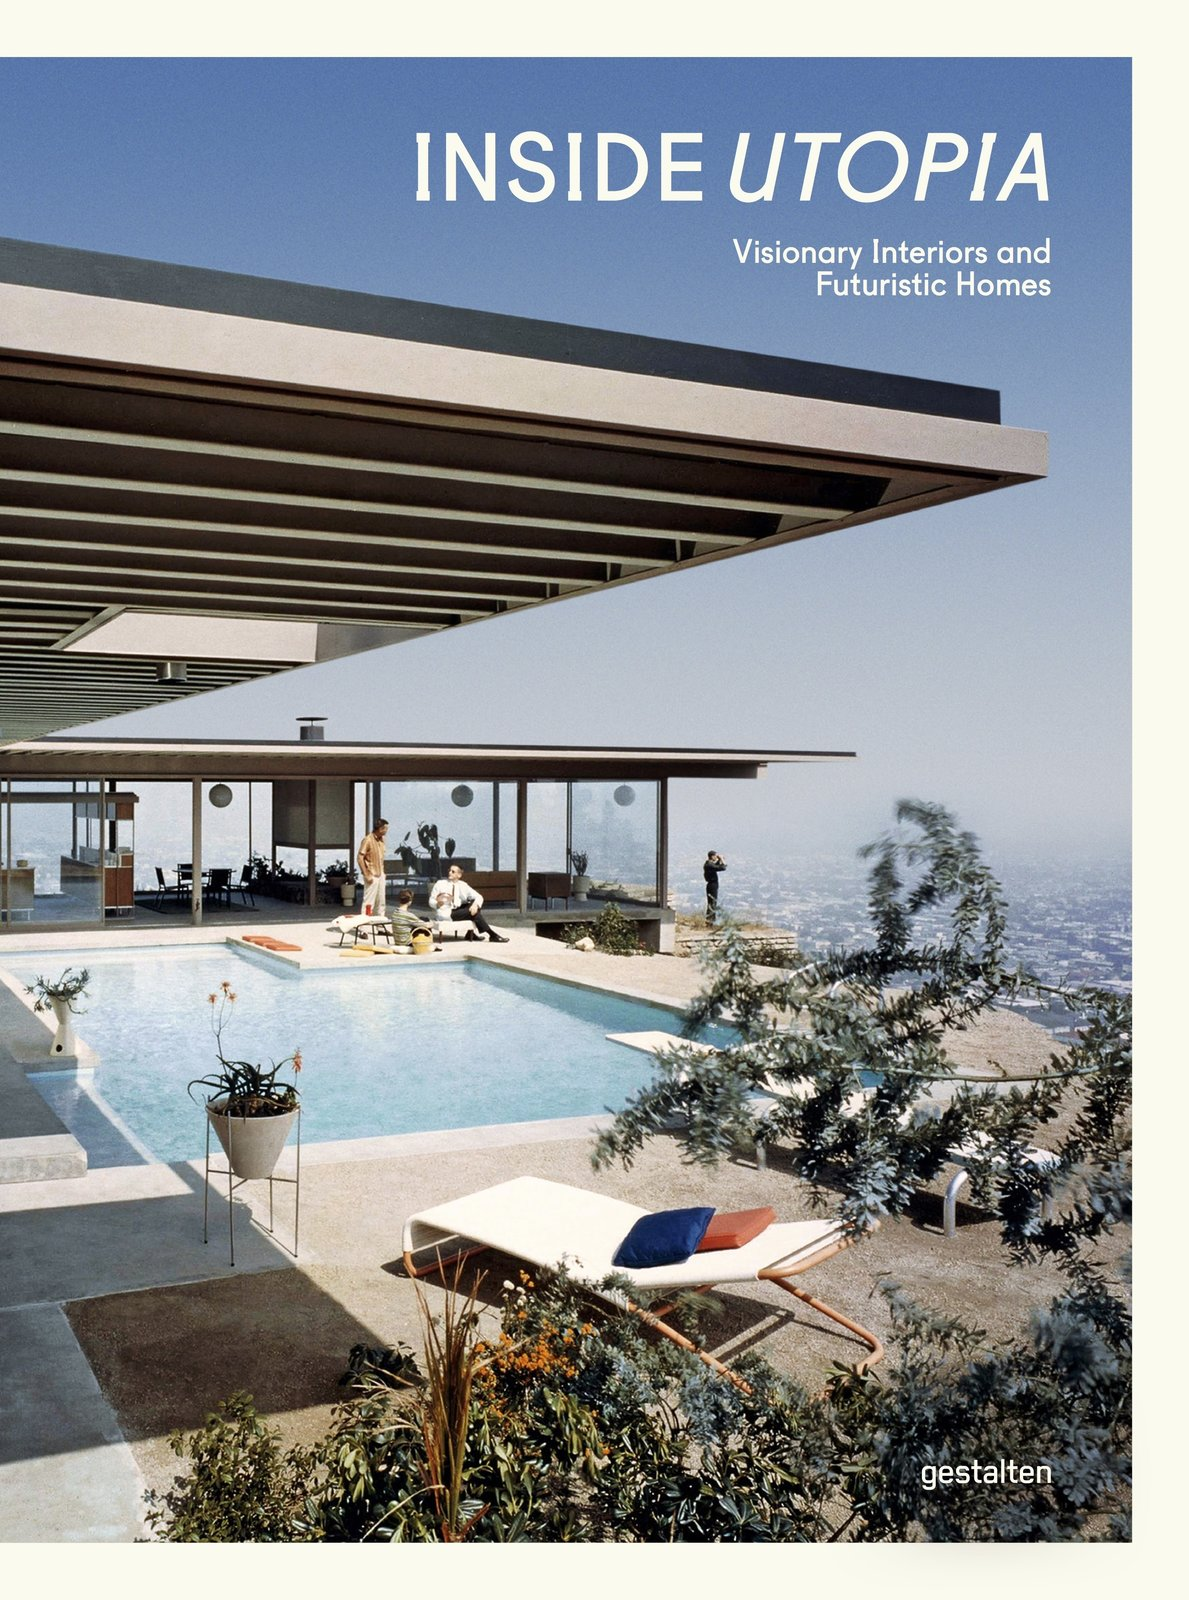 Inside Utopia, published by Gestalten. Cover photo of the Stahl House by Pierre Koenig, Los Angeles, CA, 1957.